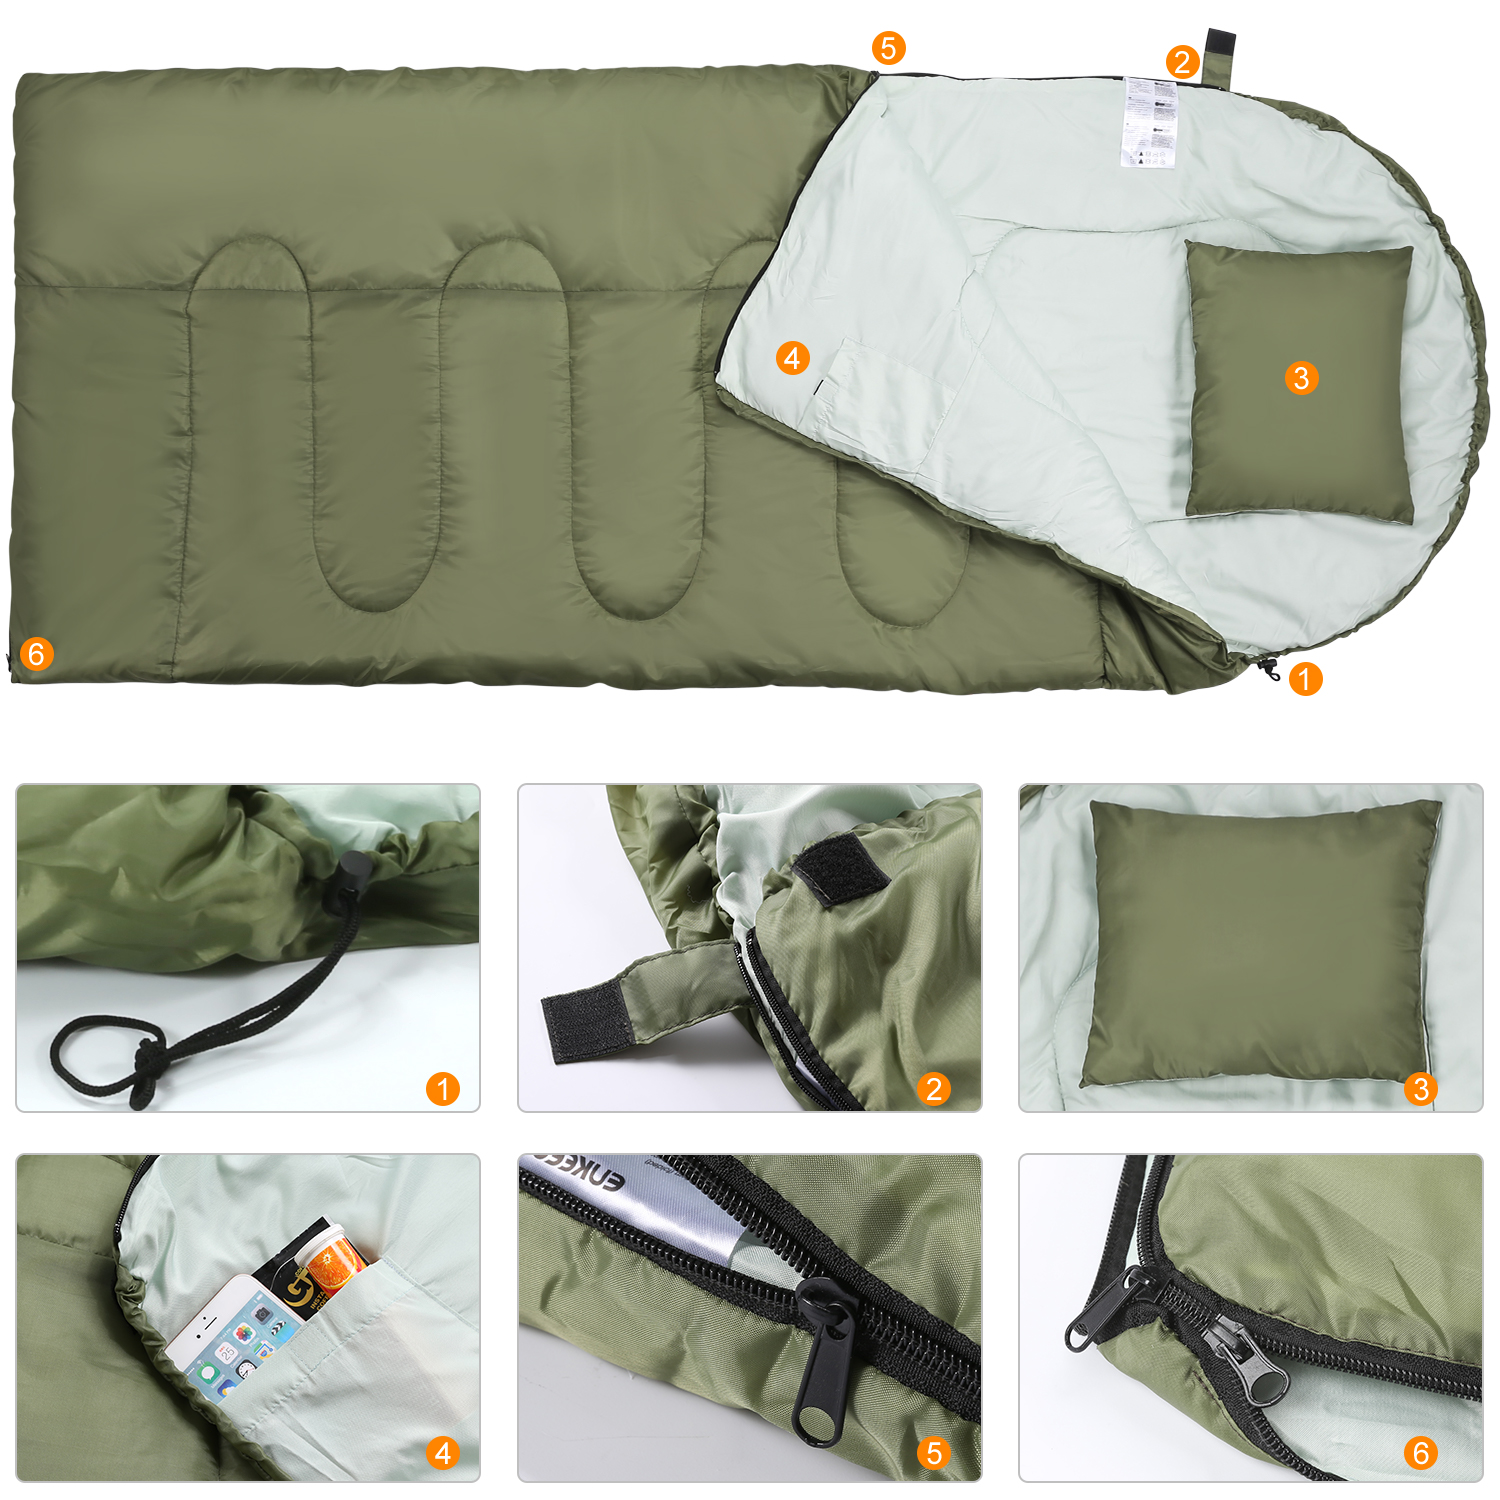 Enkeeo Envelope 4Season Sleeping Bag Waterproof Camping Hiking Outdoor Suit Case